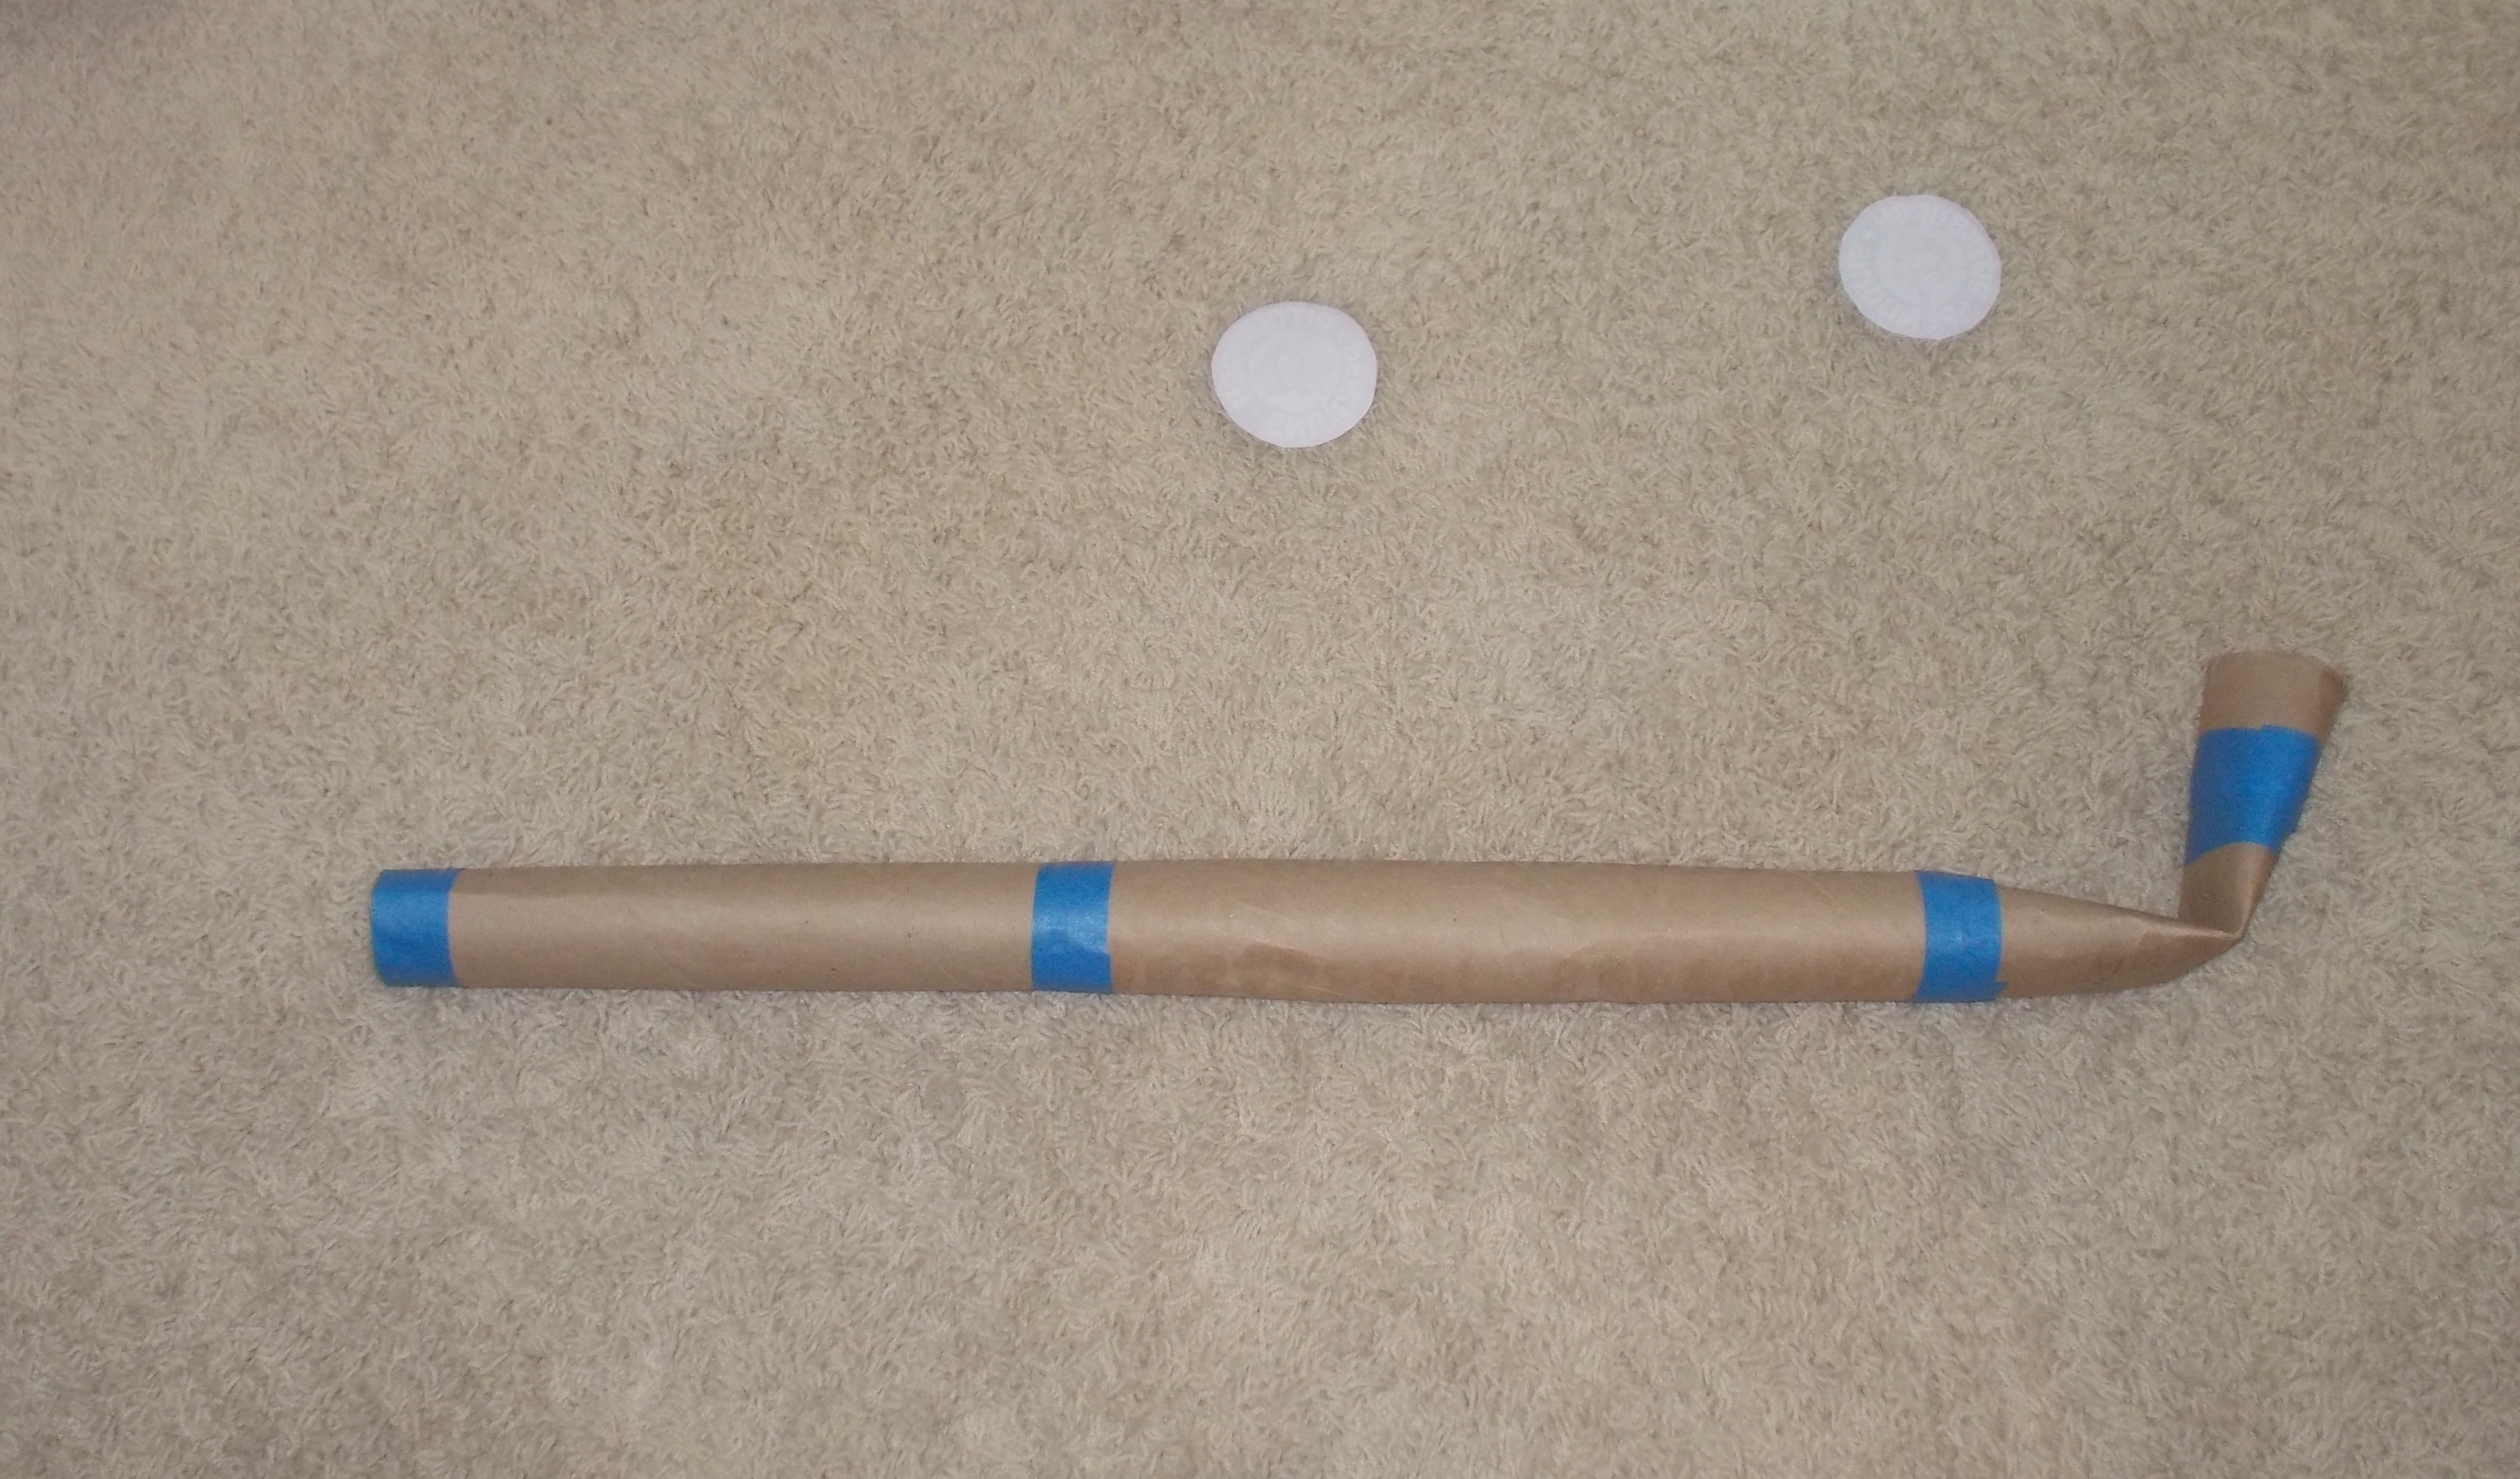 Picture of Tape Hockey Stick Together